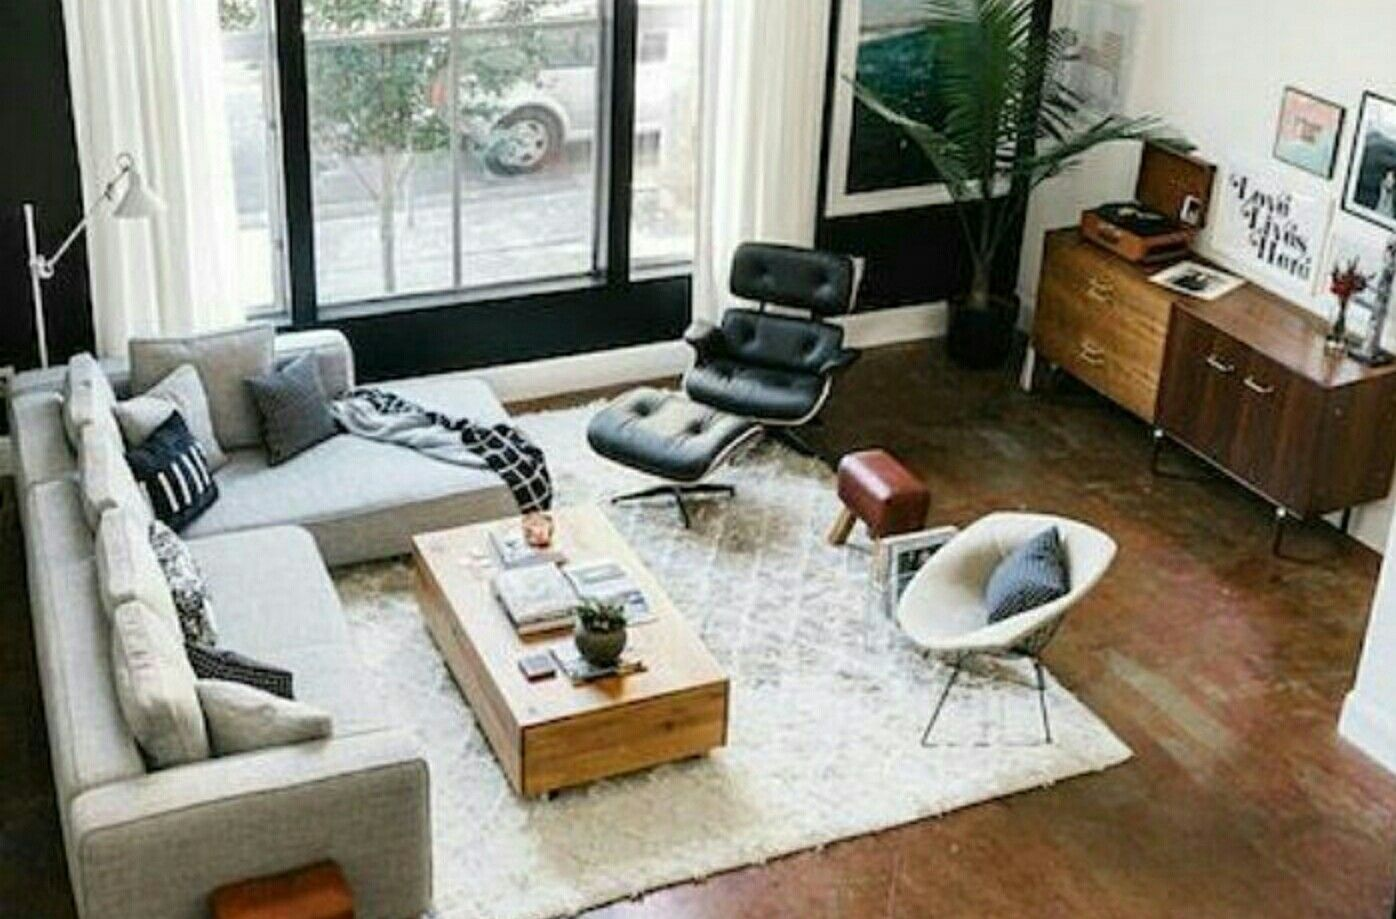 Mid century furniture these eames chair lounge is exactly what you need in your mid century modern home